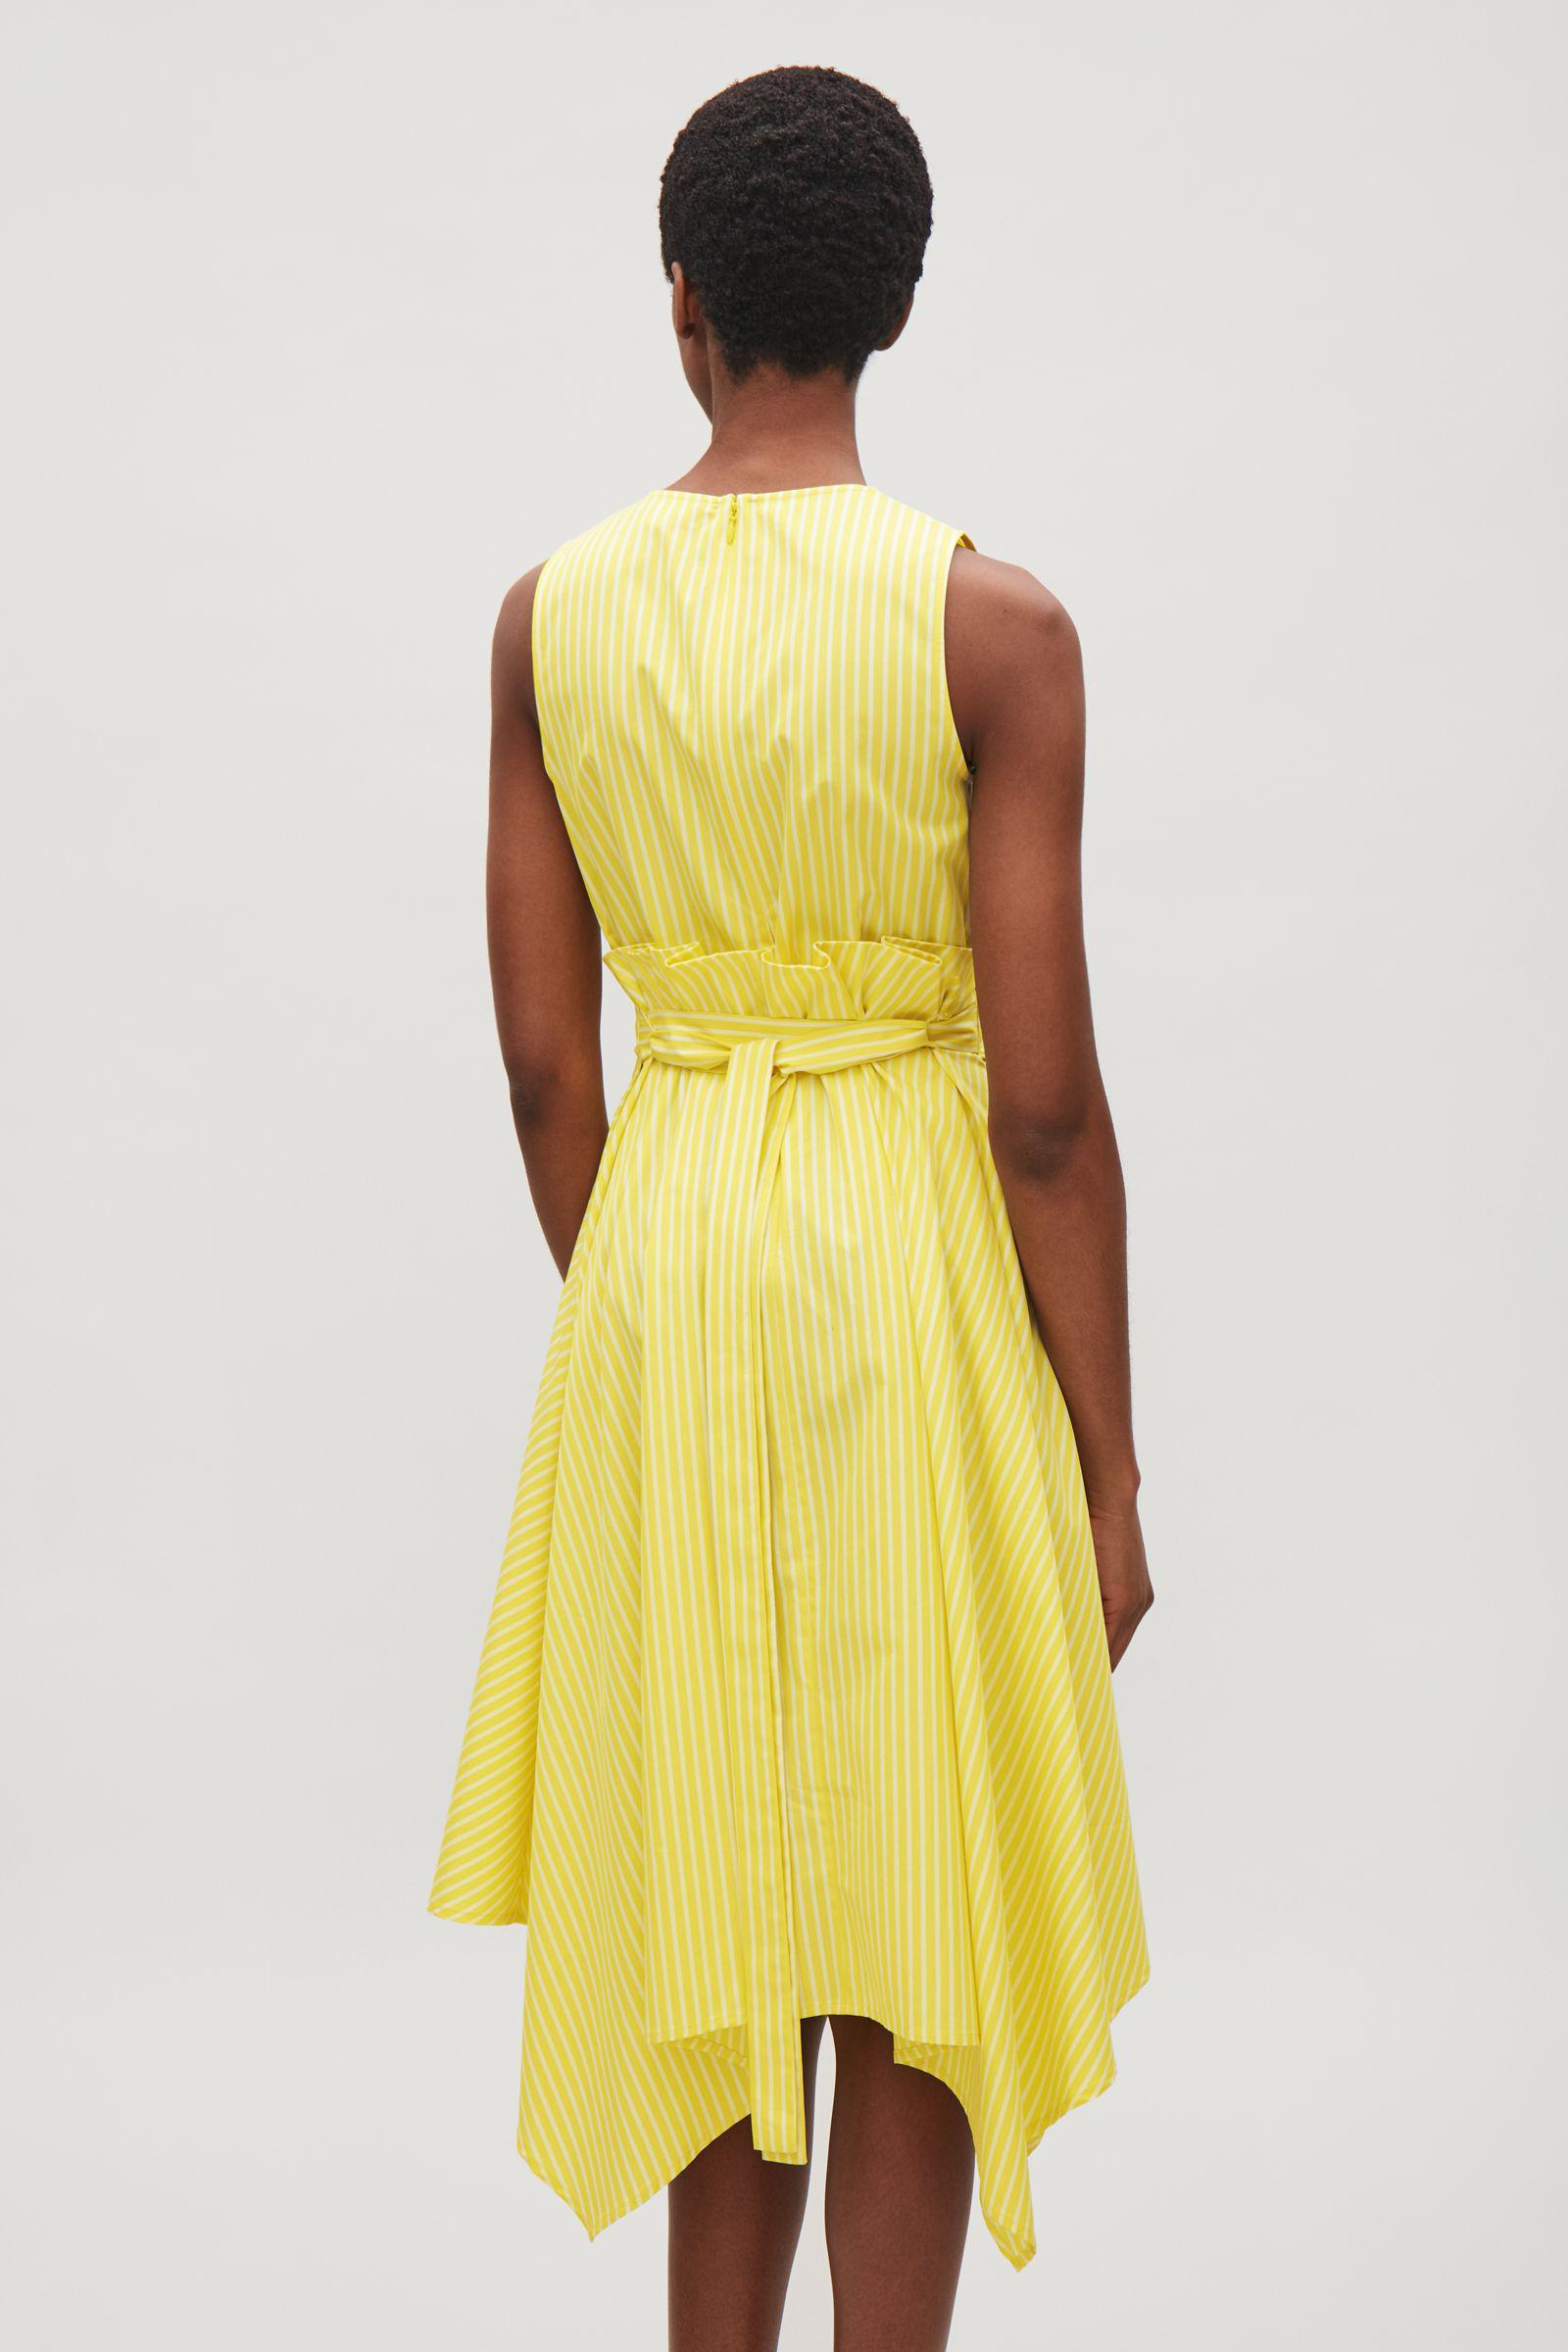 COS - Yellow Sleeveless Dress With Pleated Waist - Lyst f930d4393